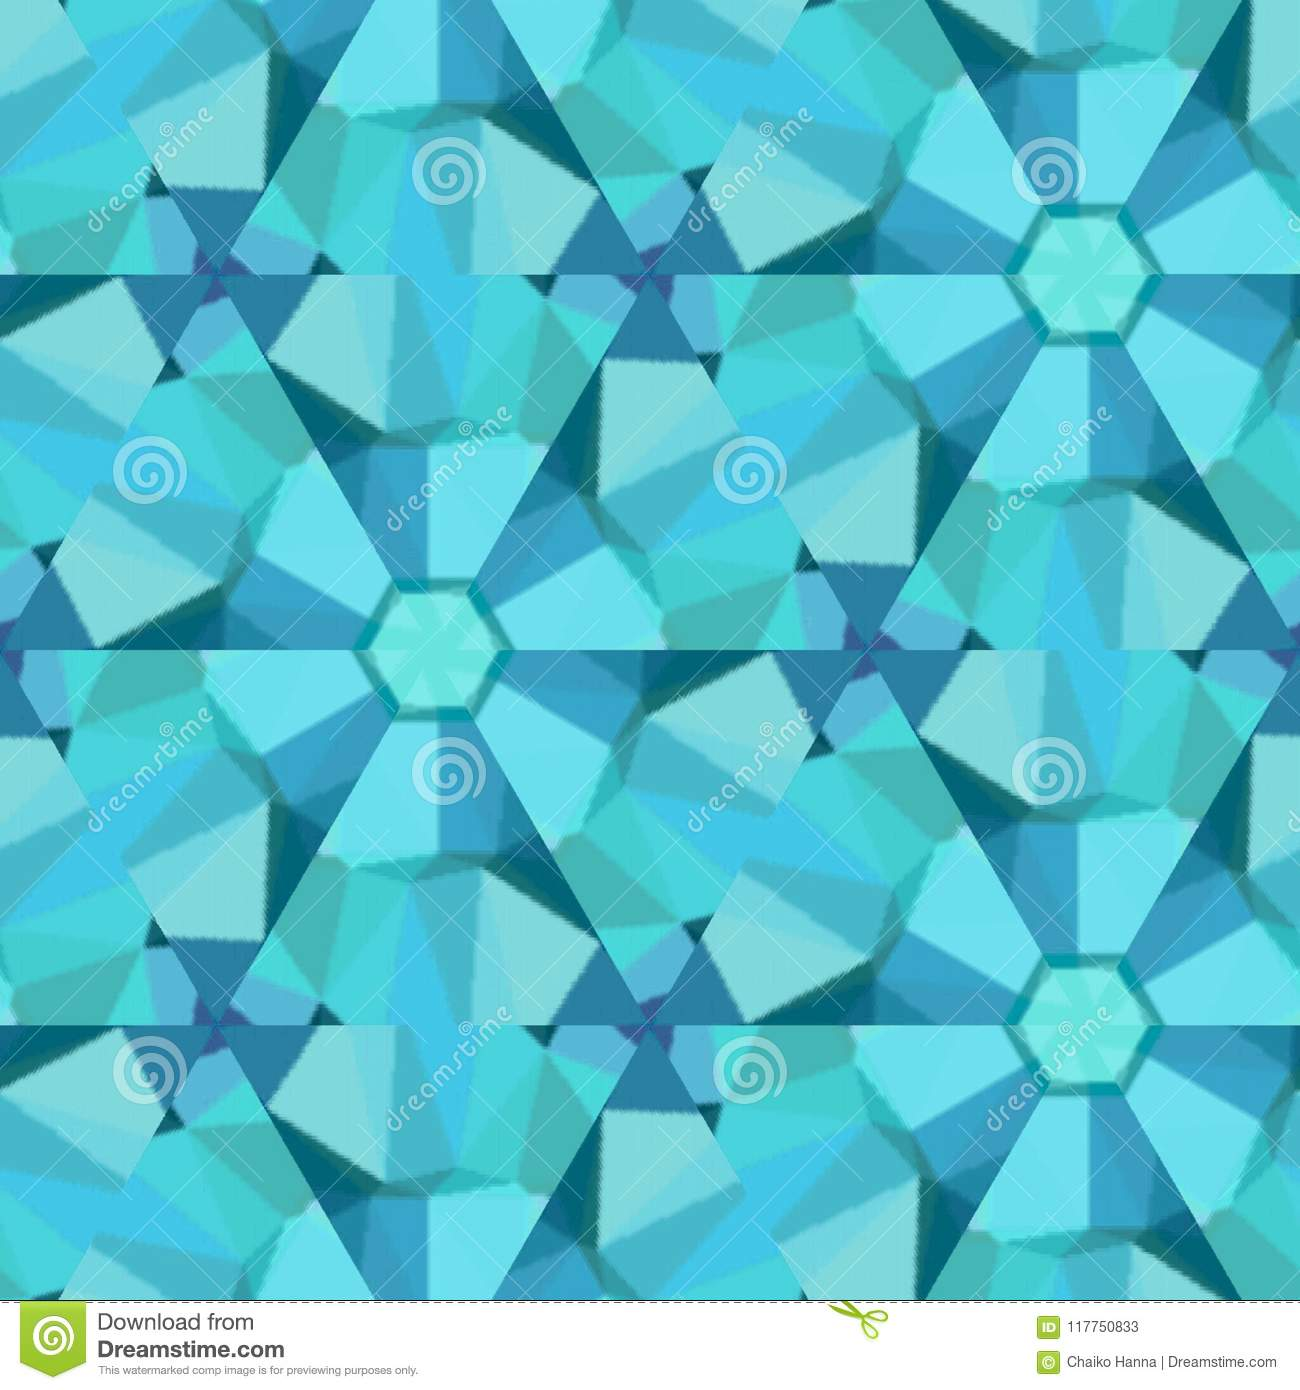 Polygon Background With Irregular Tessellations Pattern